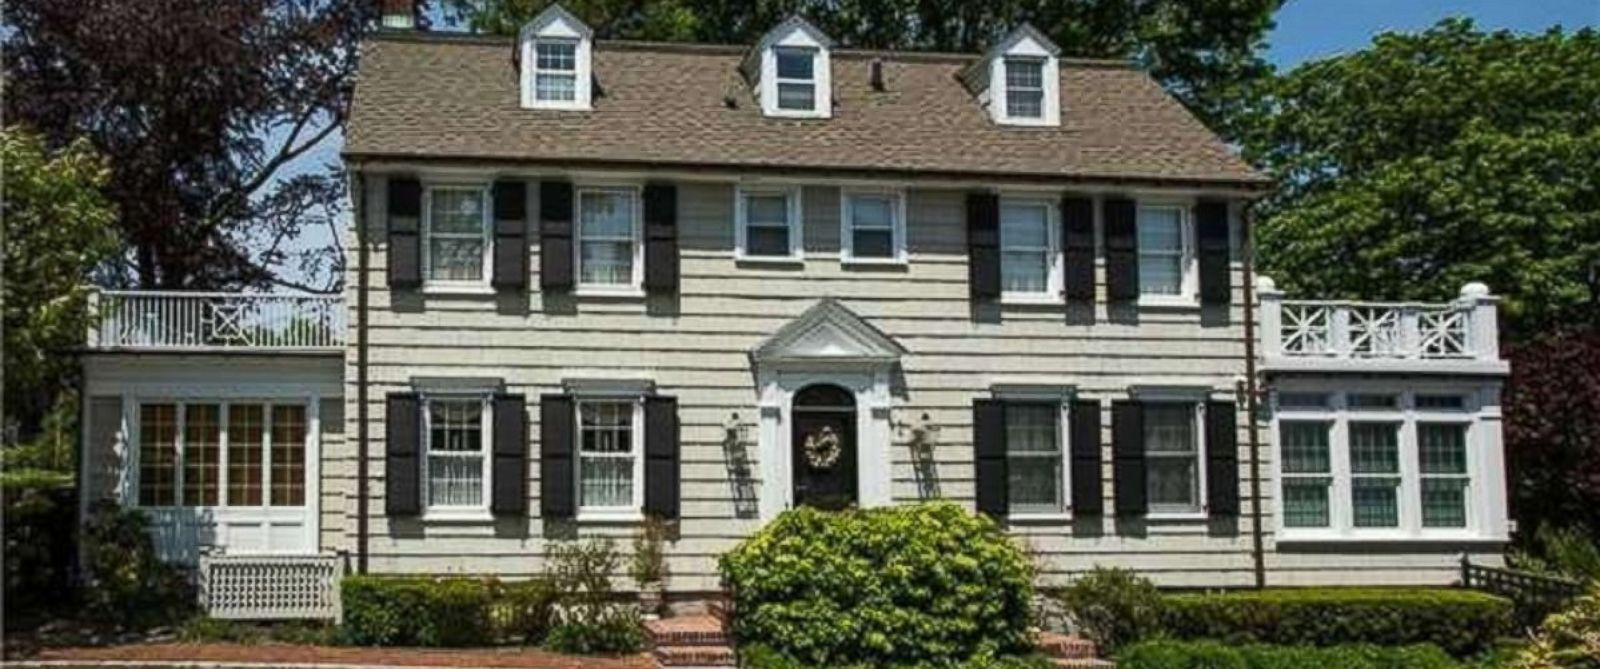 "PHOTO: The house that inspired ""The Amityville Horror"" films is back on the market for $850,000 in June 2016."